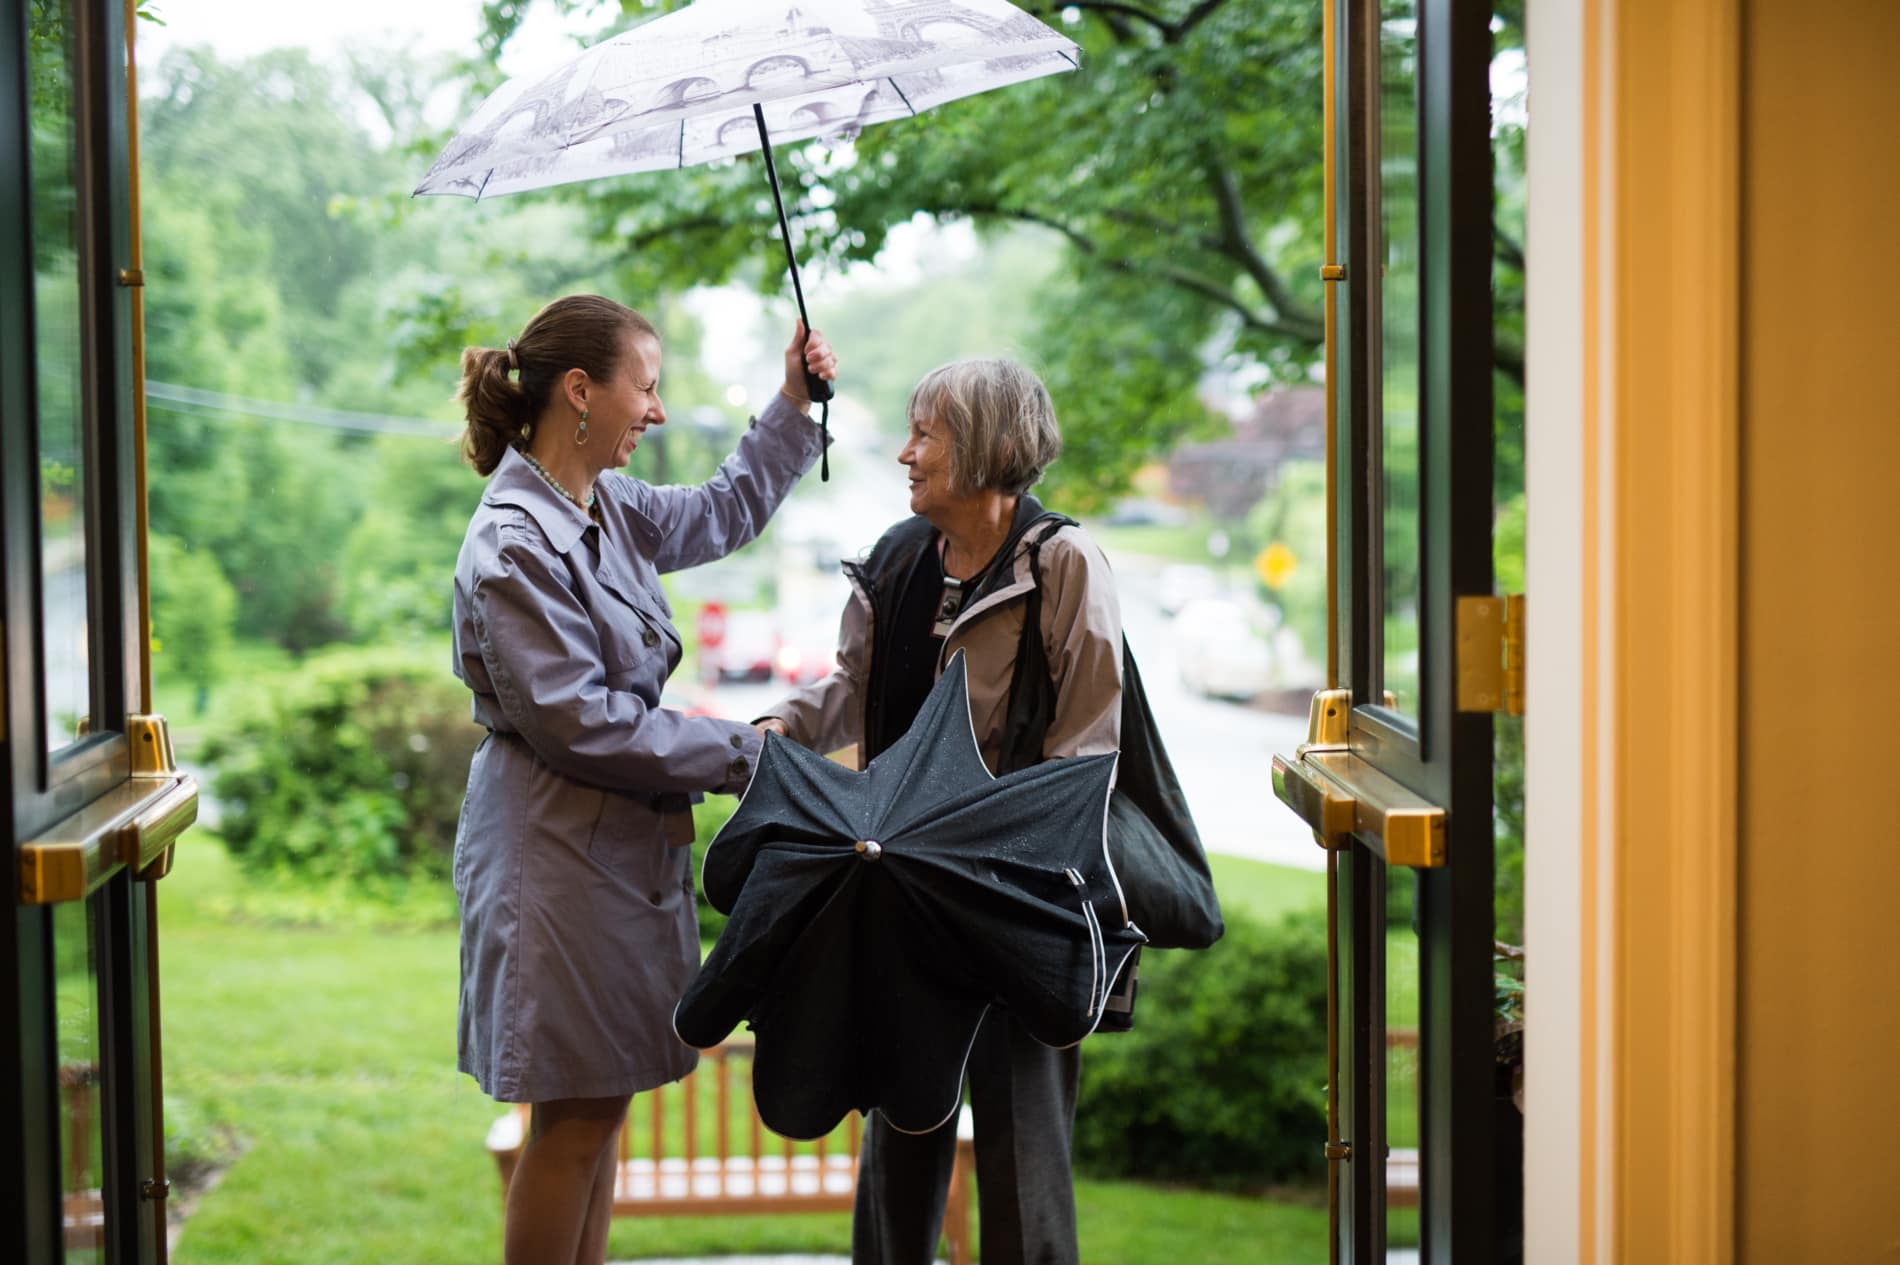 A woman holds an umbrella over another woman as she arrives at church